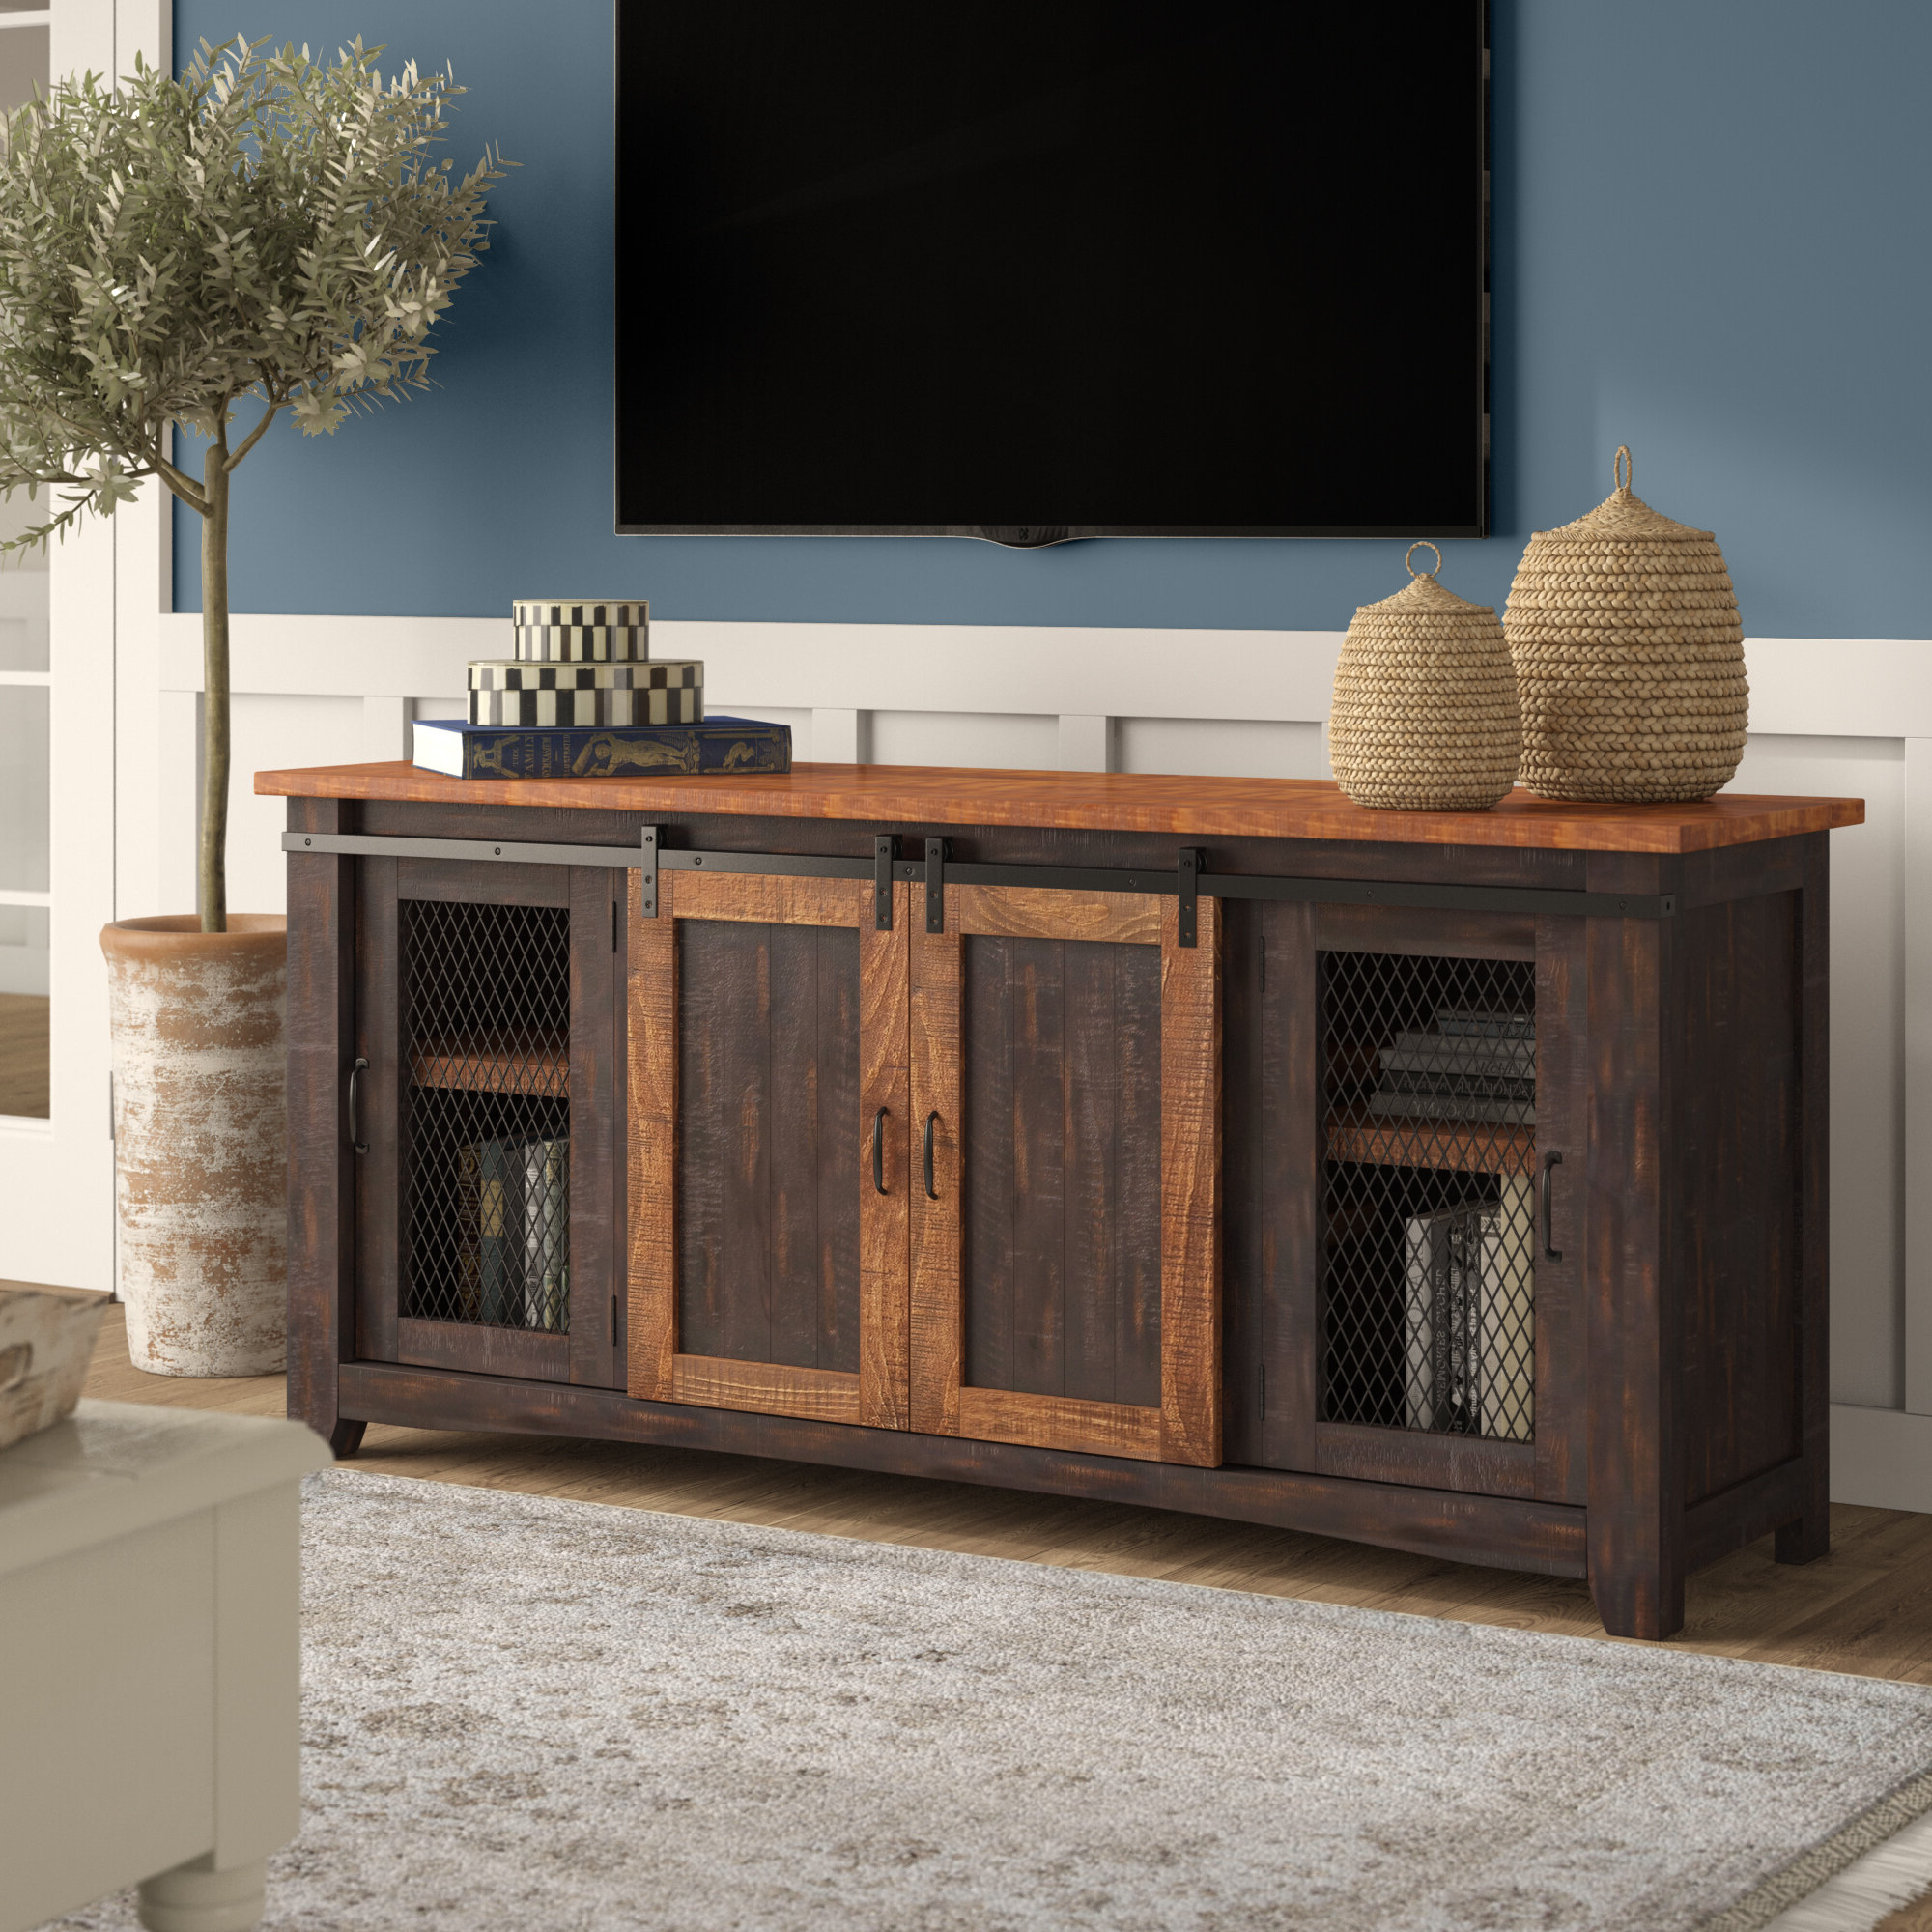 "Gracie Oaks Belen Tv Stand For Tvs Up To 70"" Within Colefax Vintage Tv Stands For Tvs Up To 78"" (View 8 of 20)"